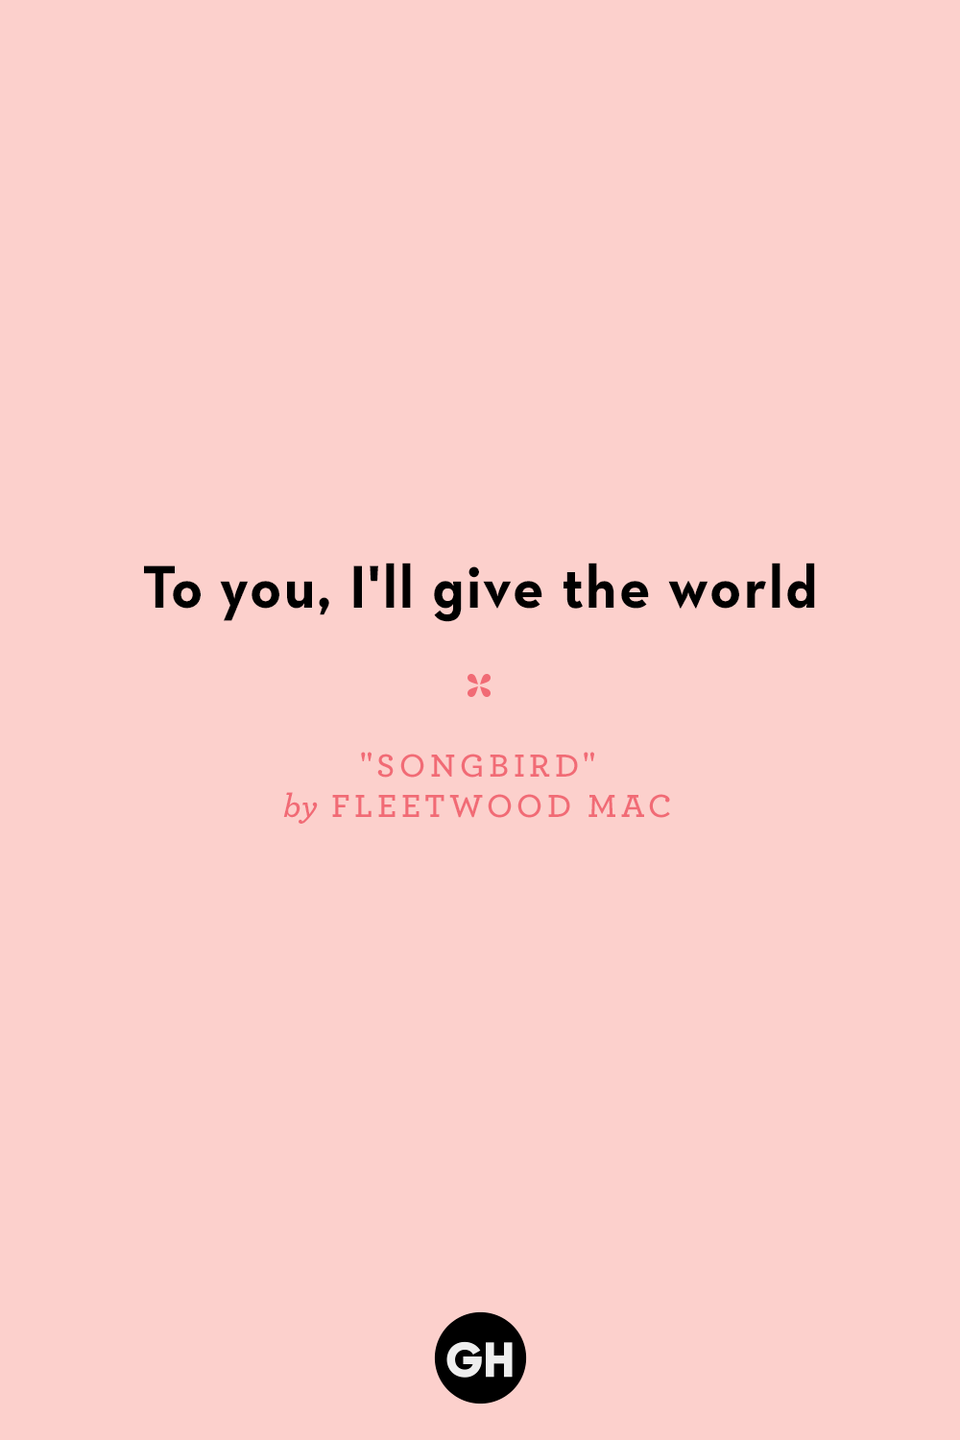 "<p>To you, I'll give the world</p><p><strong>RELATED: <a href=""https://www.goodhousekeeping.com/holidays/valentines-day-ideas/g4093/valentines-day-quotes/"" rel=""nofollow noopener"" target=""_blank"" data-ylk=""slk:40+ Heartfelt Valentine's Day Quotes That Make Us Say &quot;Aww&quot;"" class=""link rapid-noclick-resp"">40+ Heartfelt Valentine's Day Quotes That Make Us Say ""Aww""</a></strong></p>"